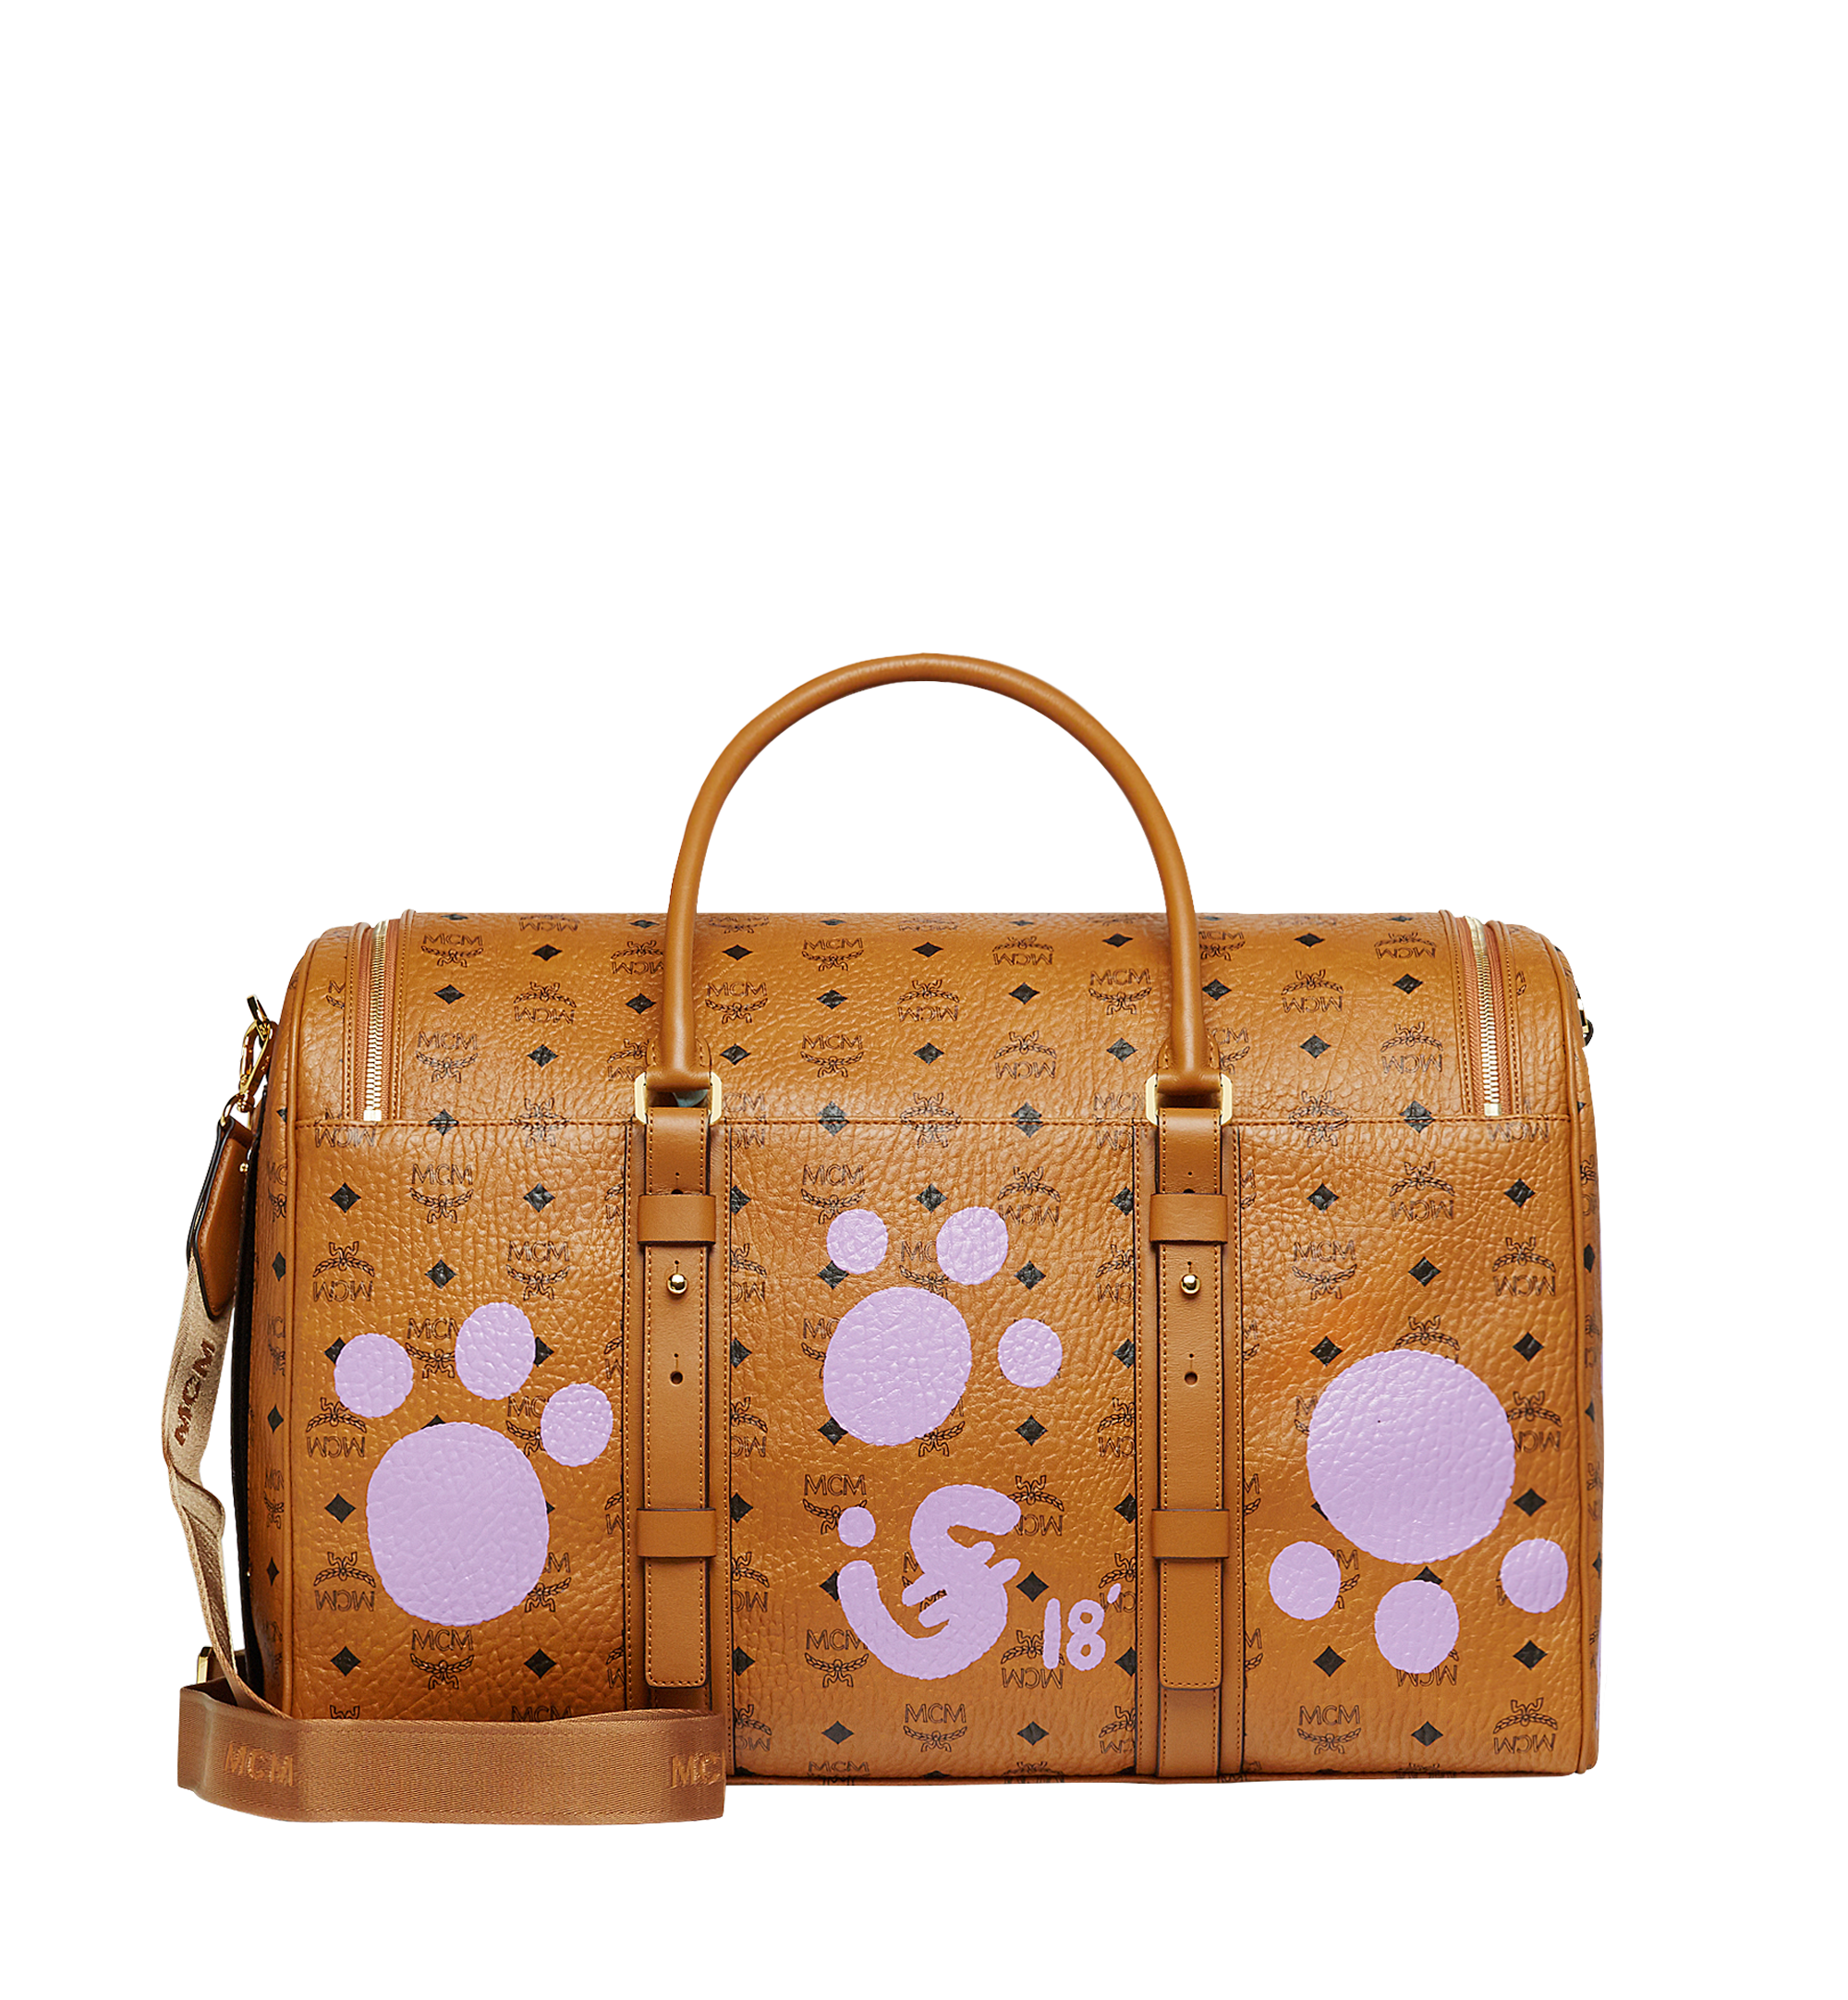 MCM_X_Eddie_Kang_Auction_Piece___Dog_Carrier_HQ_10.png